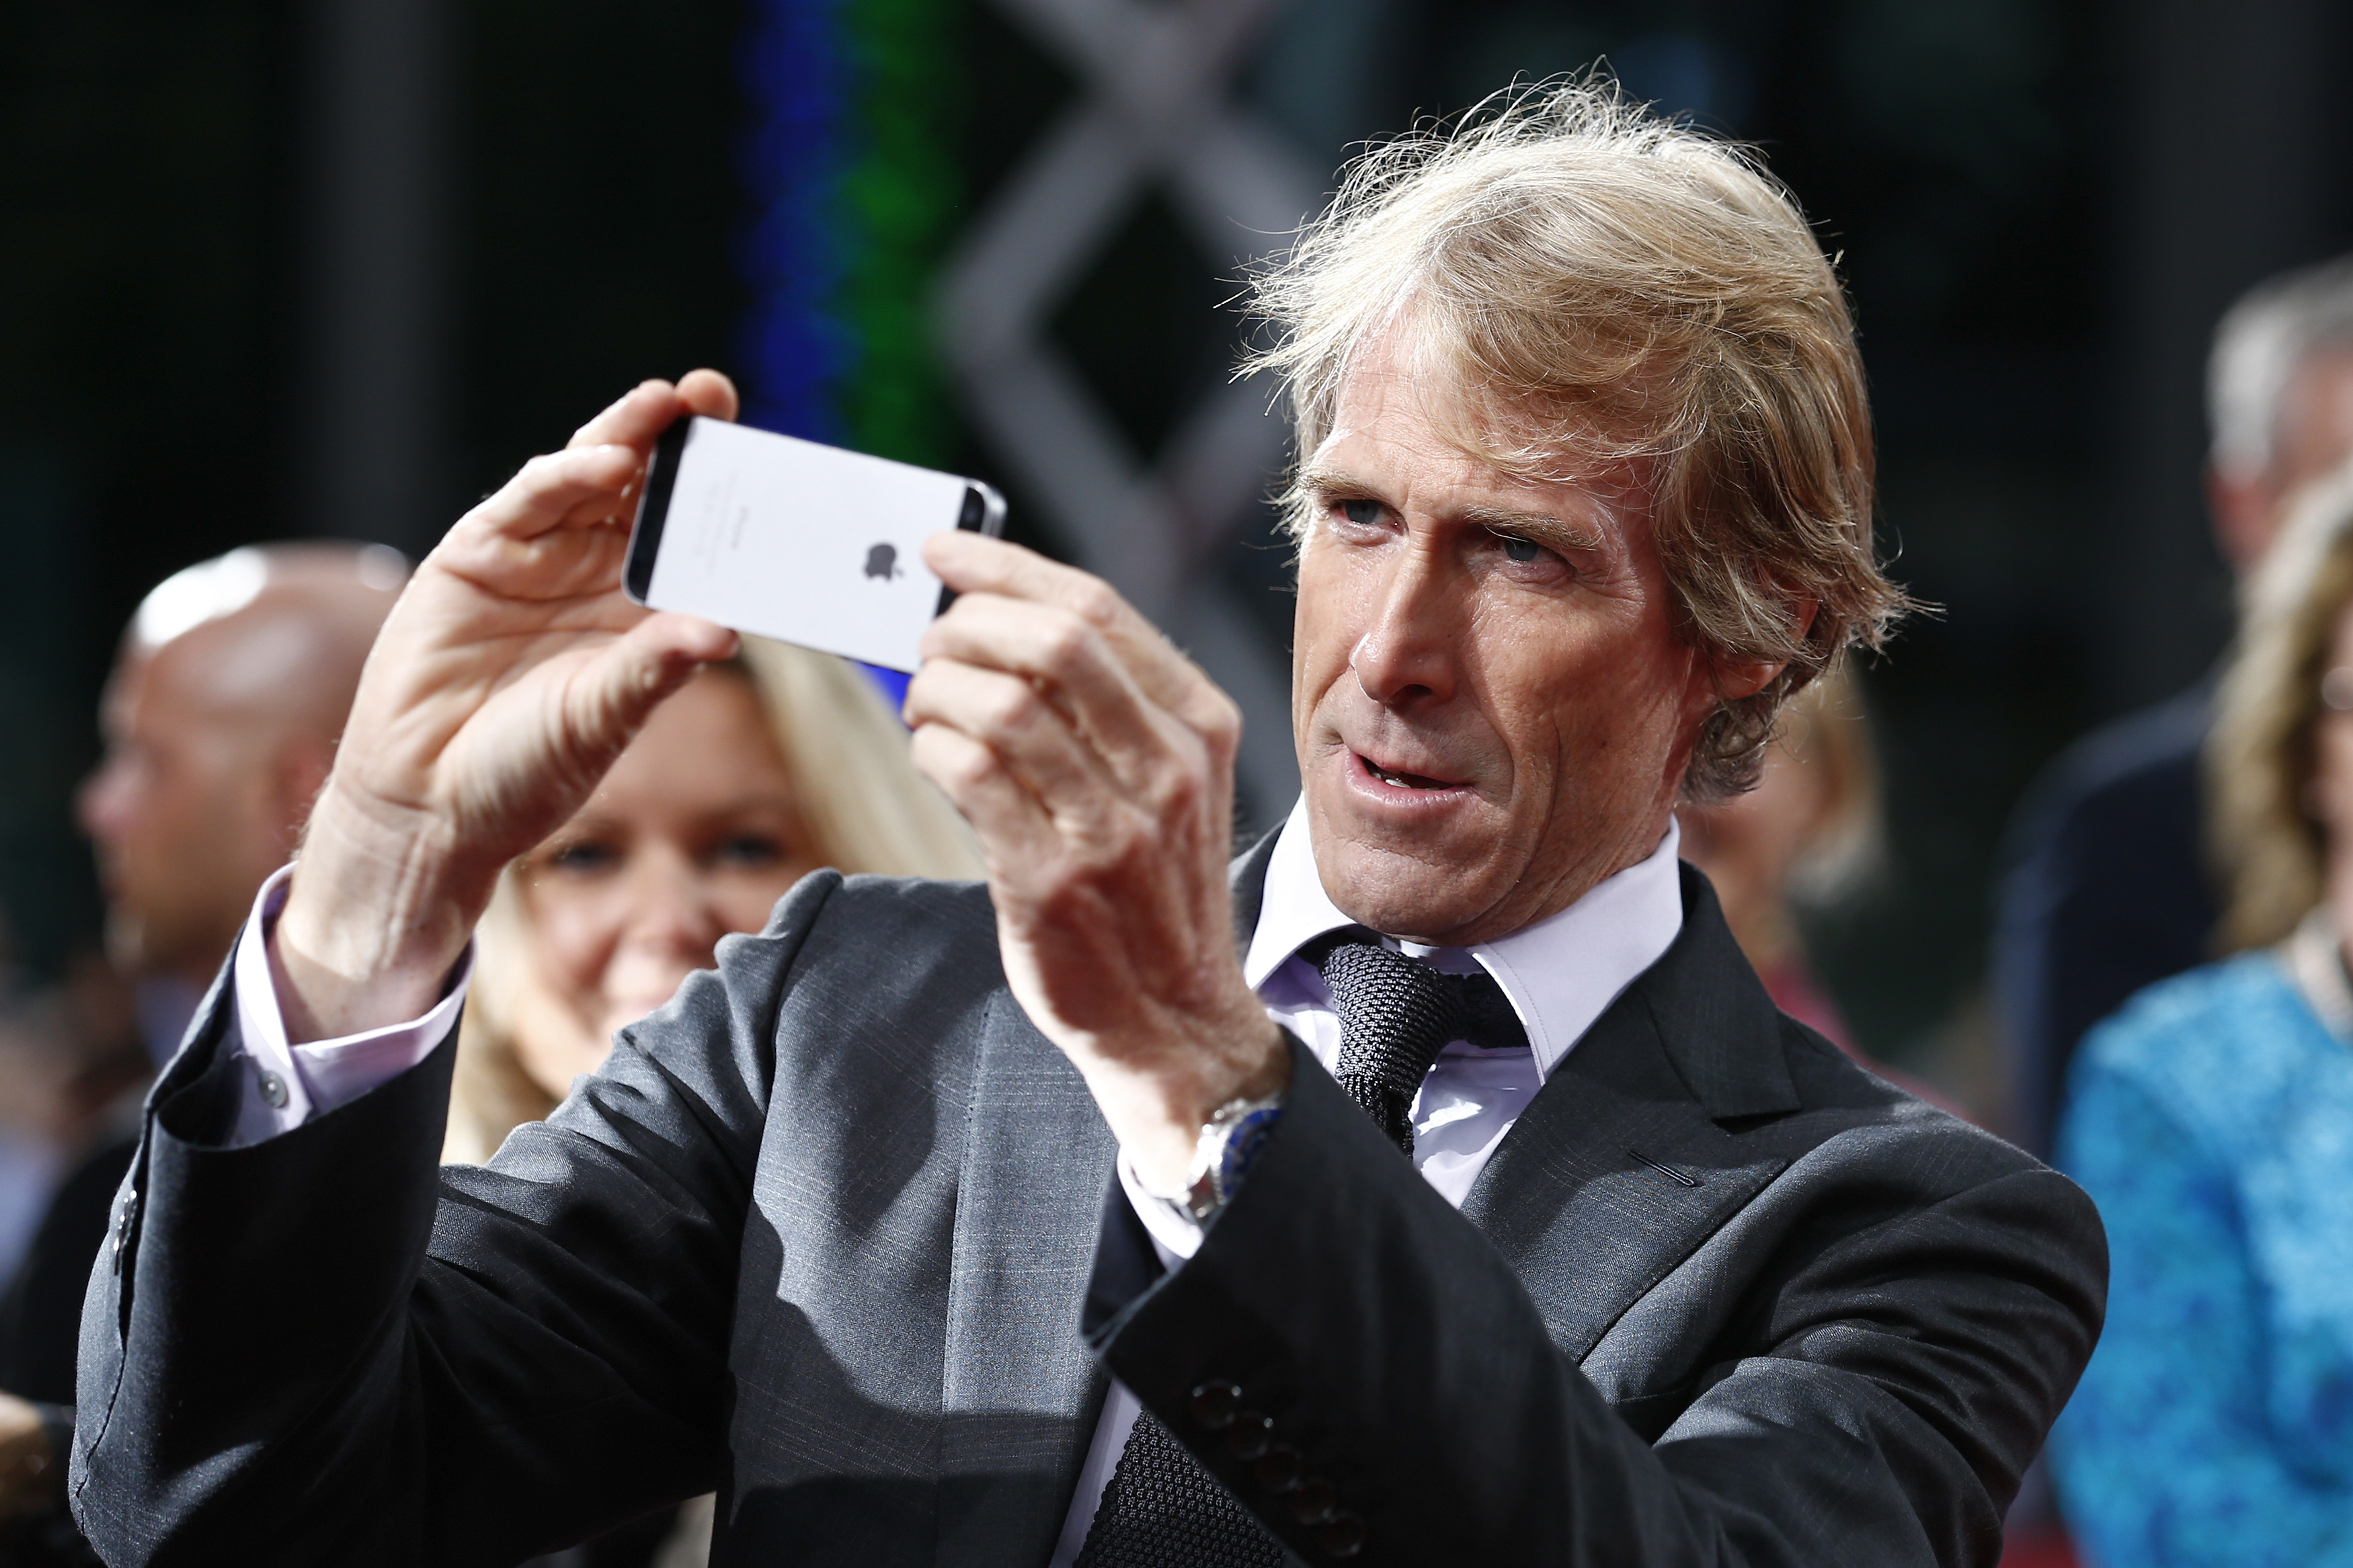 Director Michael Bay attends the european premiere of 'Transformers: Age of Extinction' at Sony Centre on June 29, 2014 in Berlin, Germany.